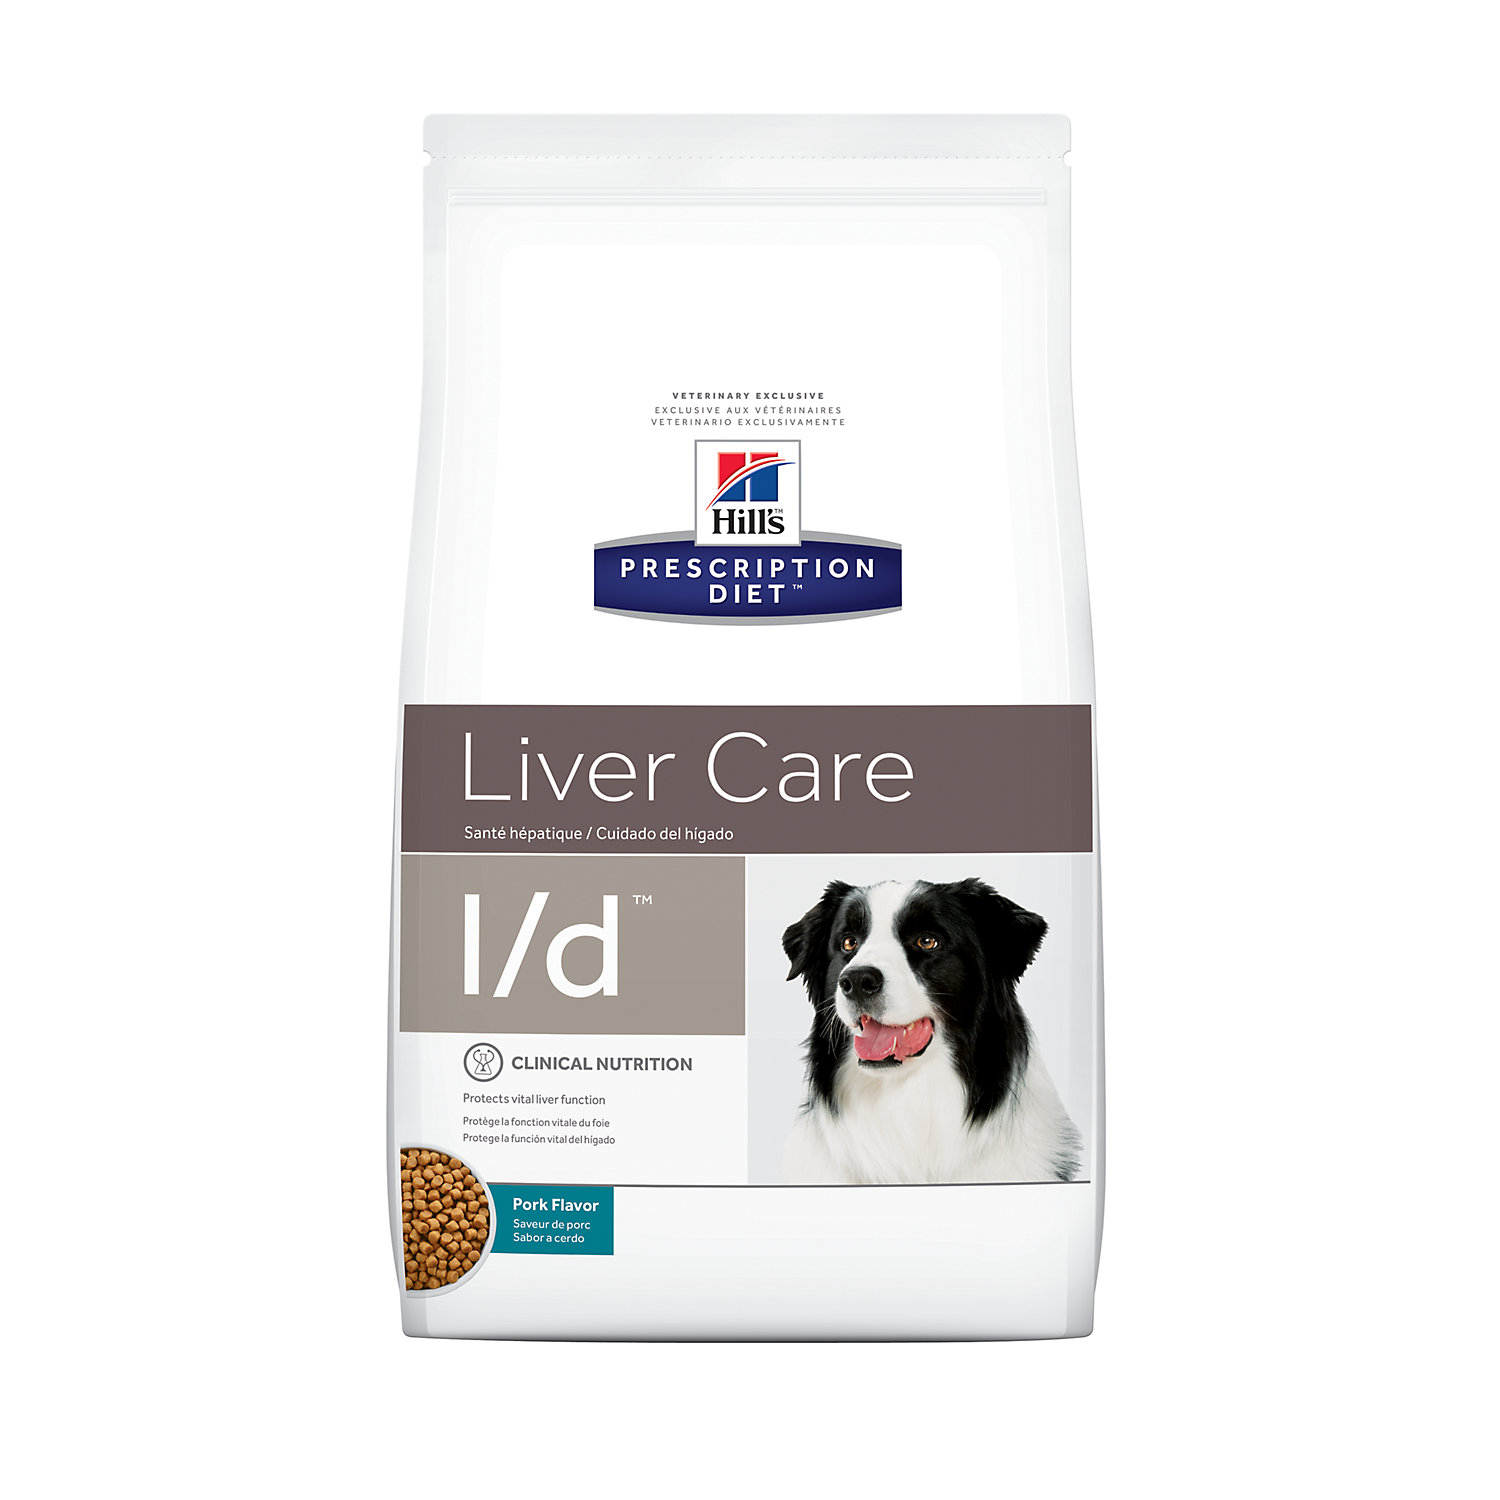 Hills Prescription Diet ld Liver Care Pork Flavor Dry Dog Food